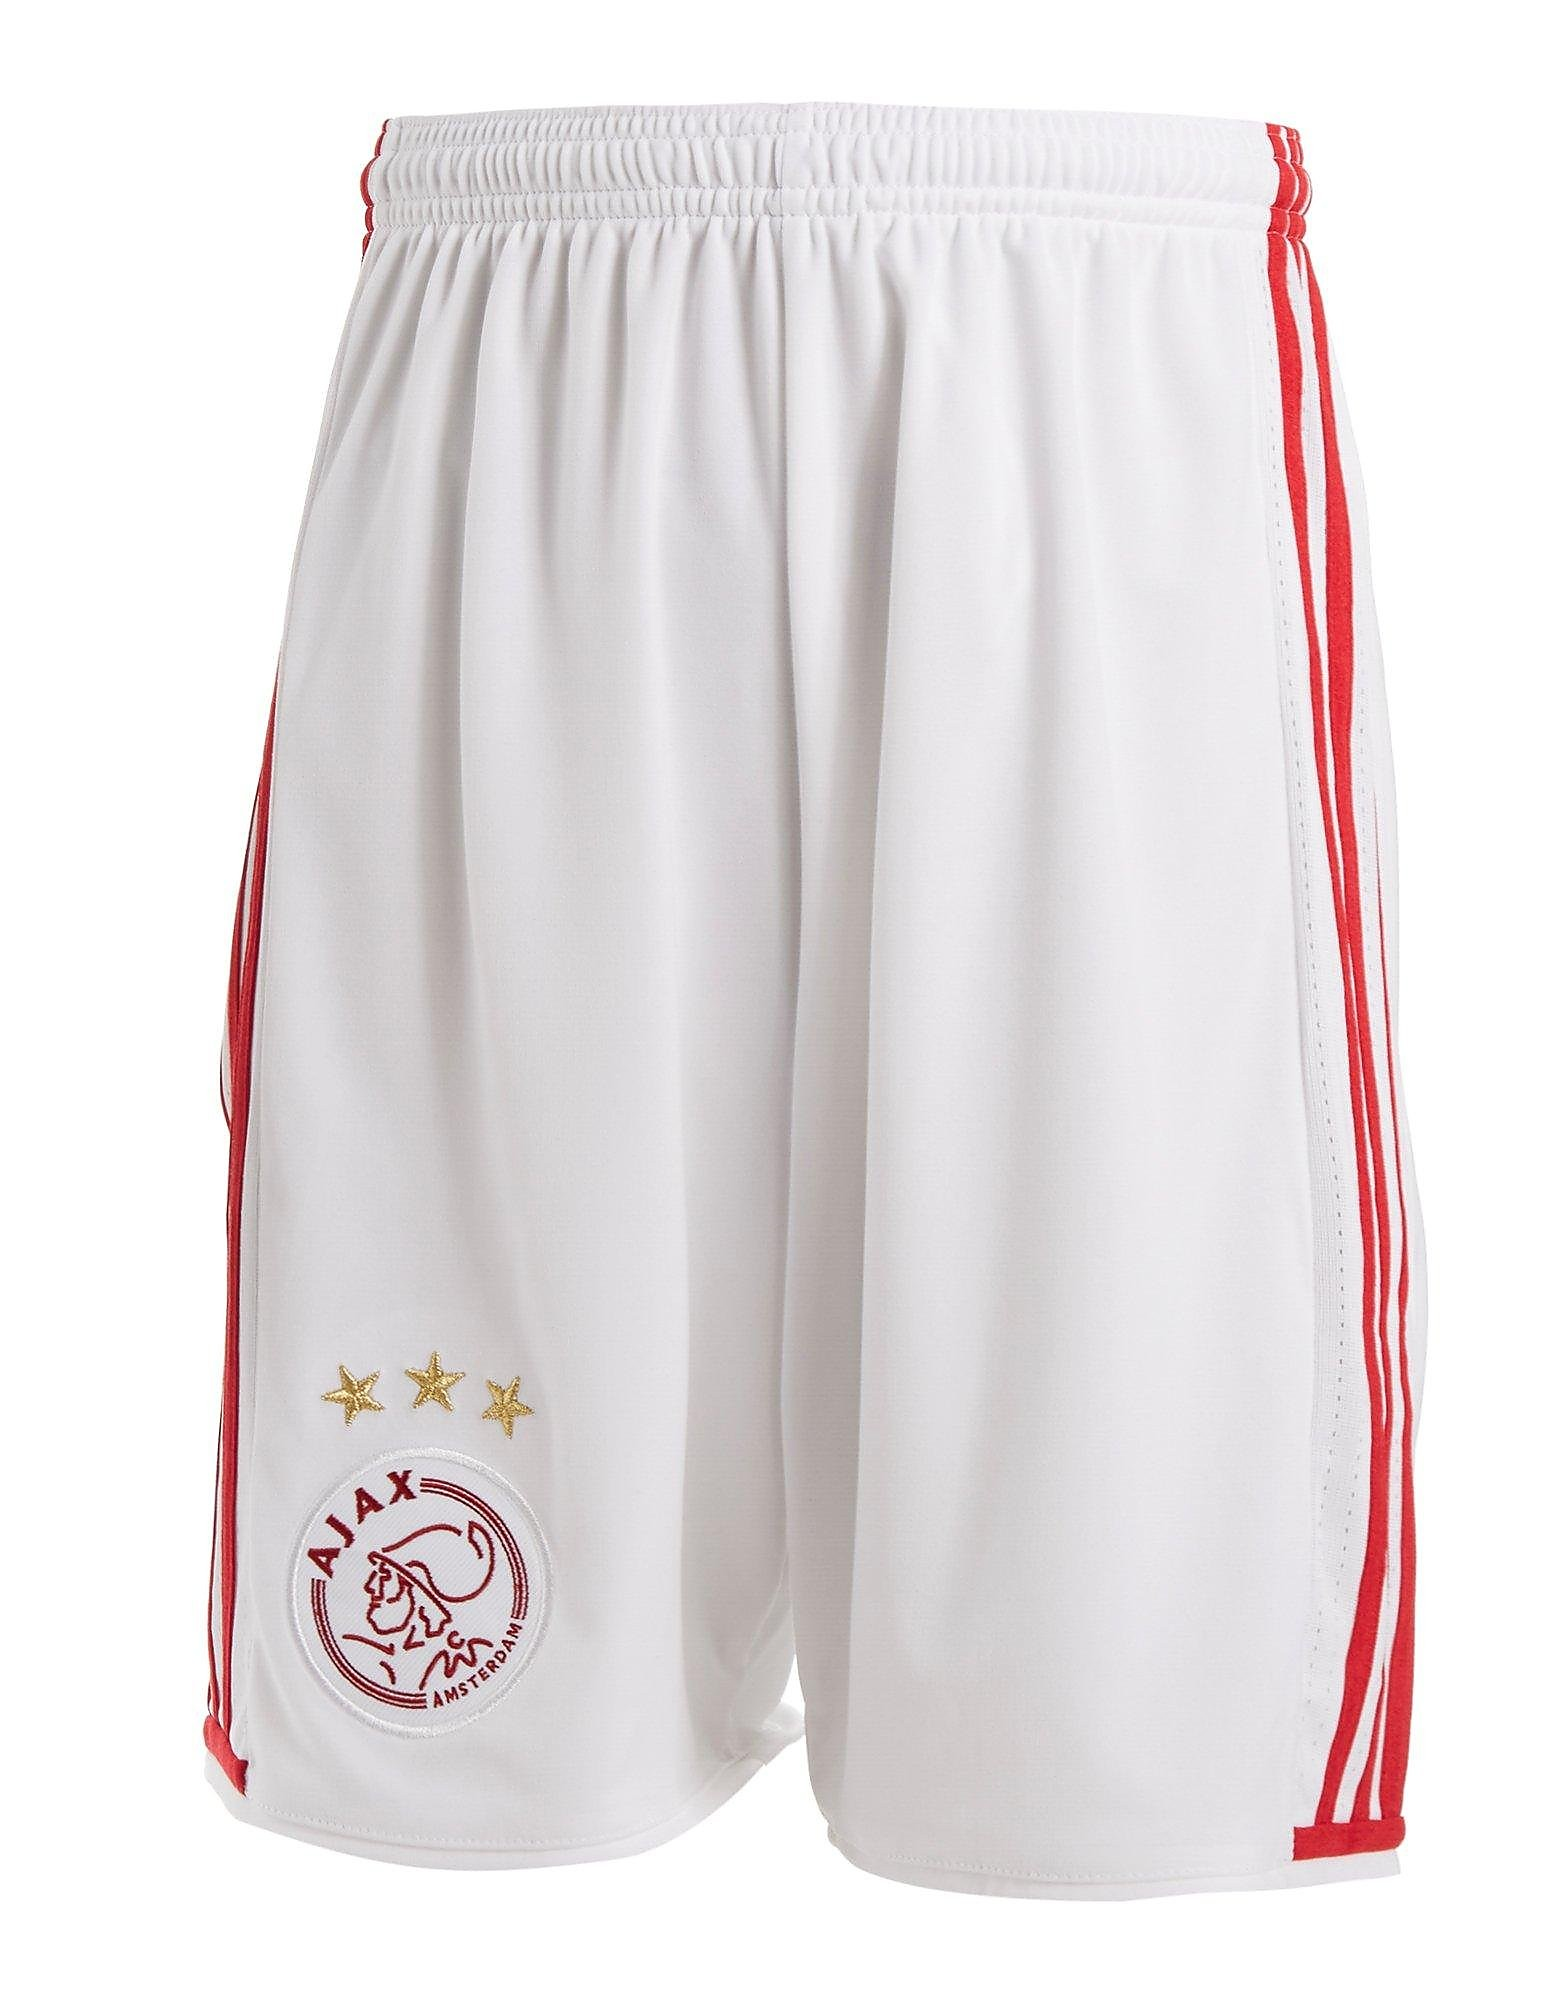 adidas Ajax 201617 Training Jersey Junior White Kids